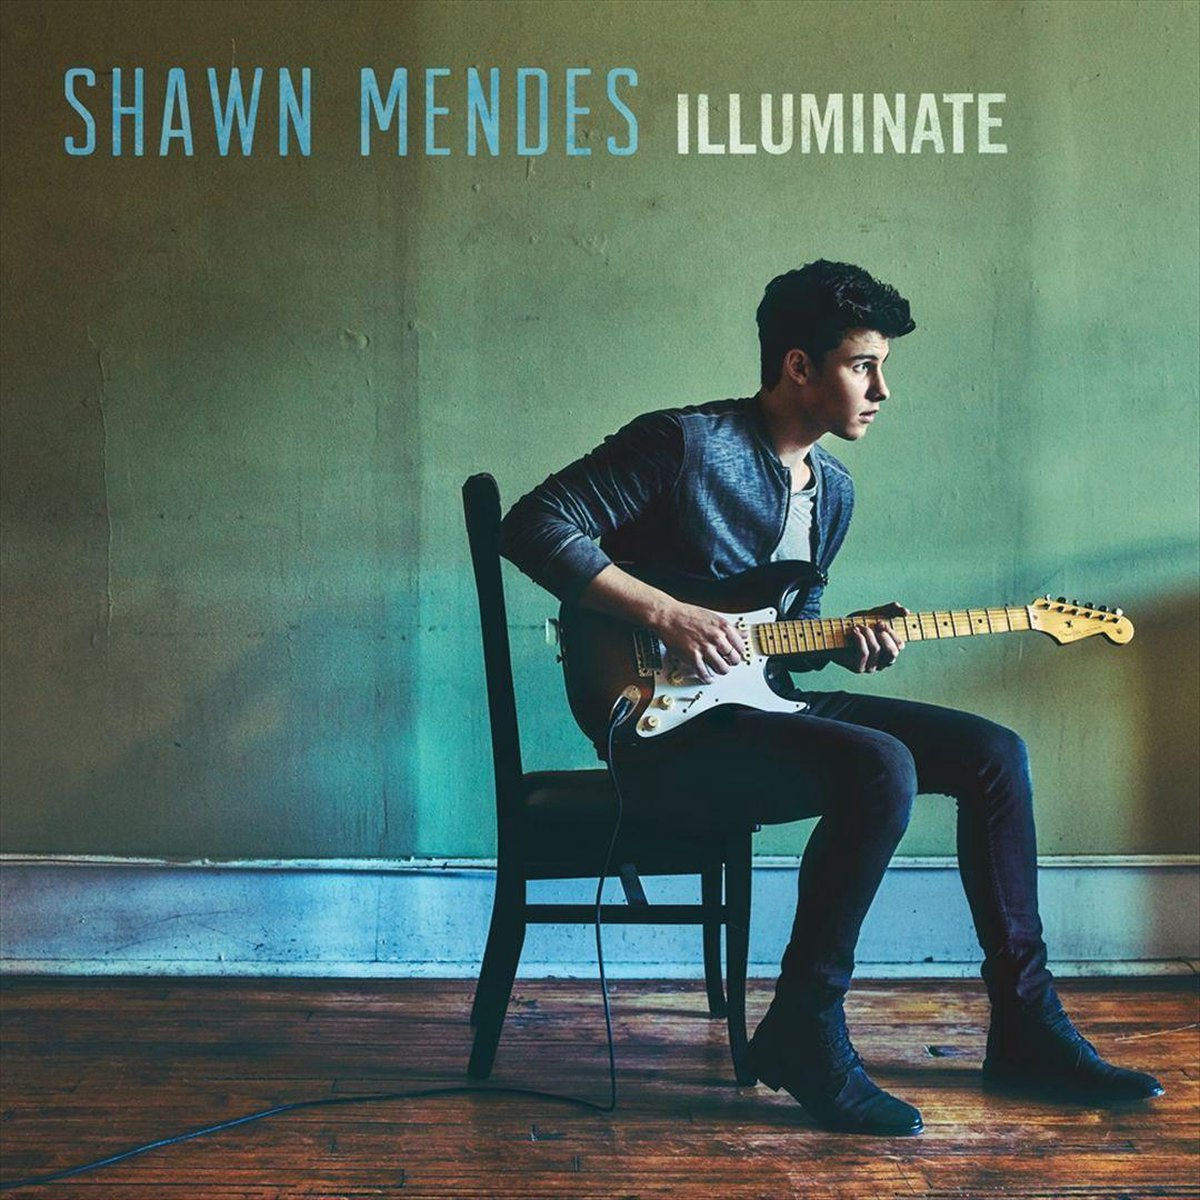 Illuminate (Deluxe Edition) - Shawn Mendes